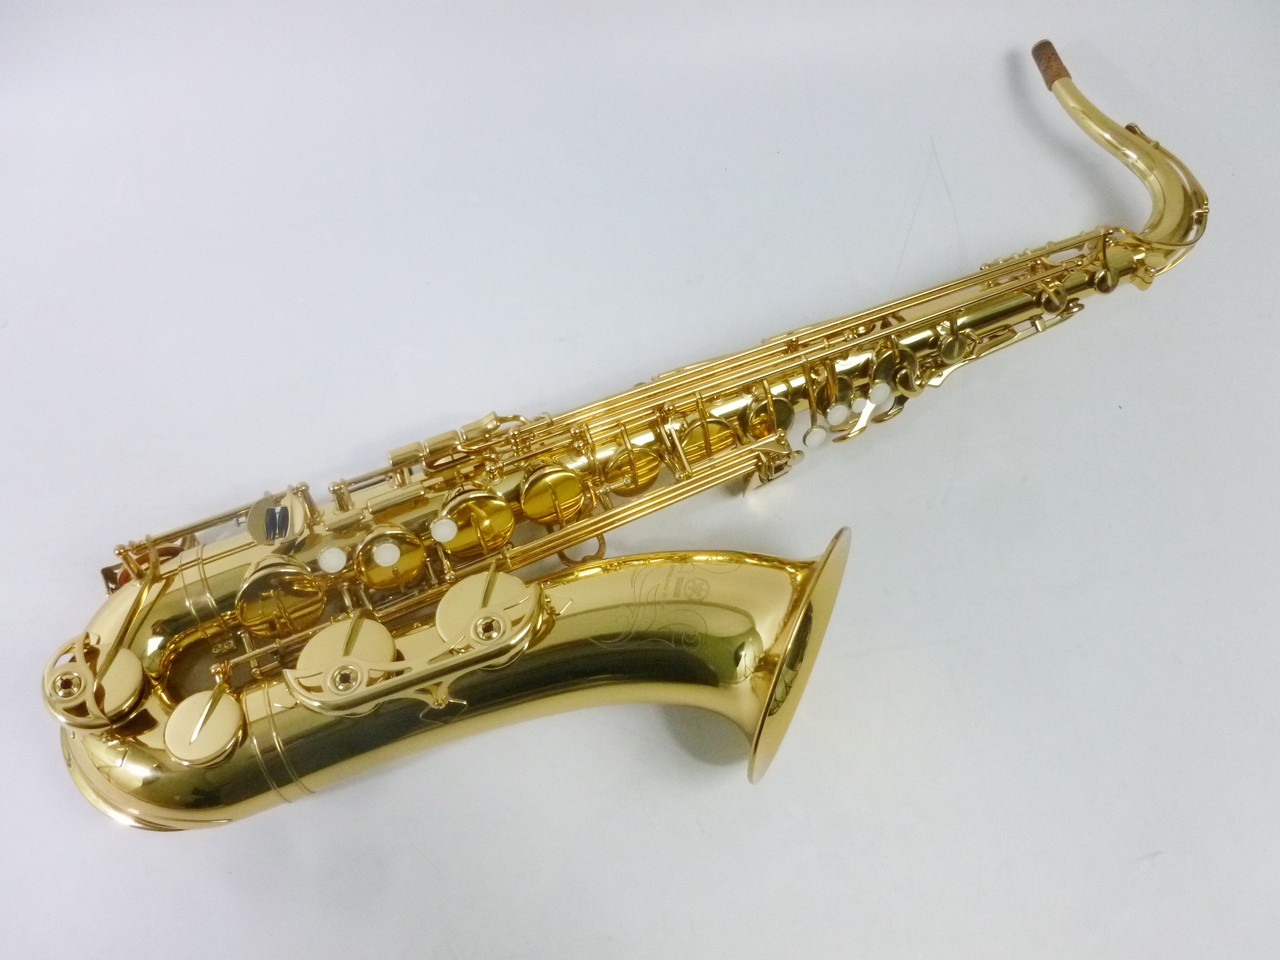 YAMAHA YTS 475 TENOR SAX (MADE IN JAPAN) - REFURBISHED 5